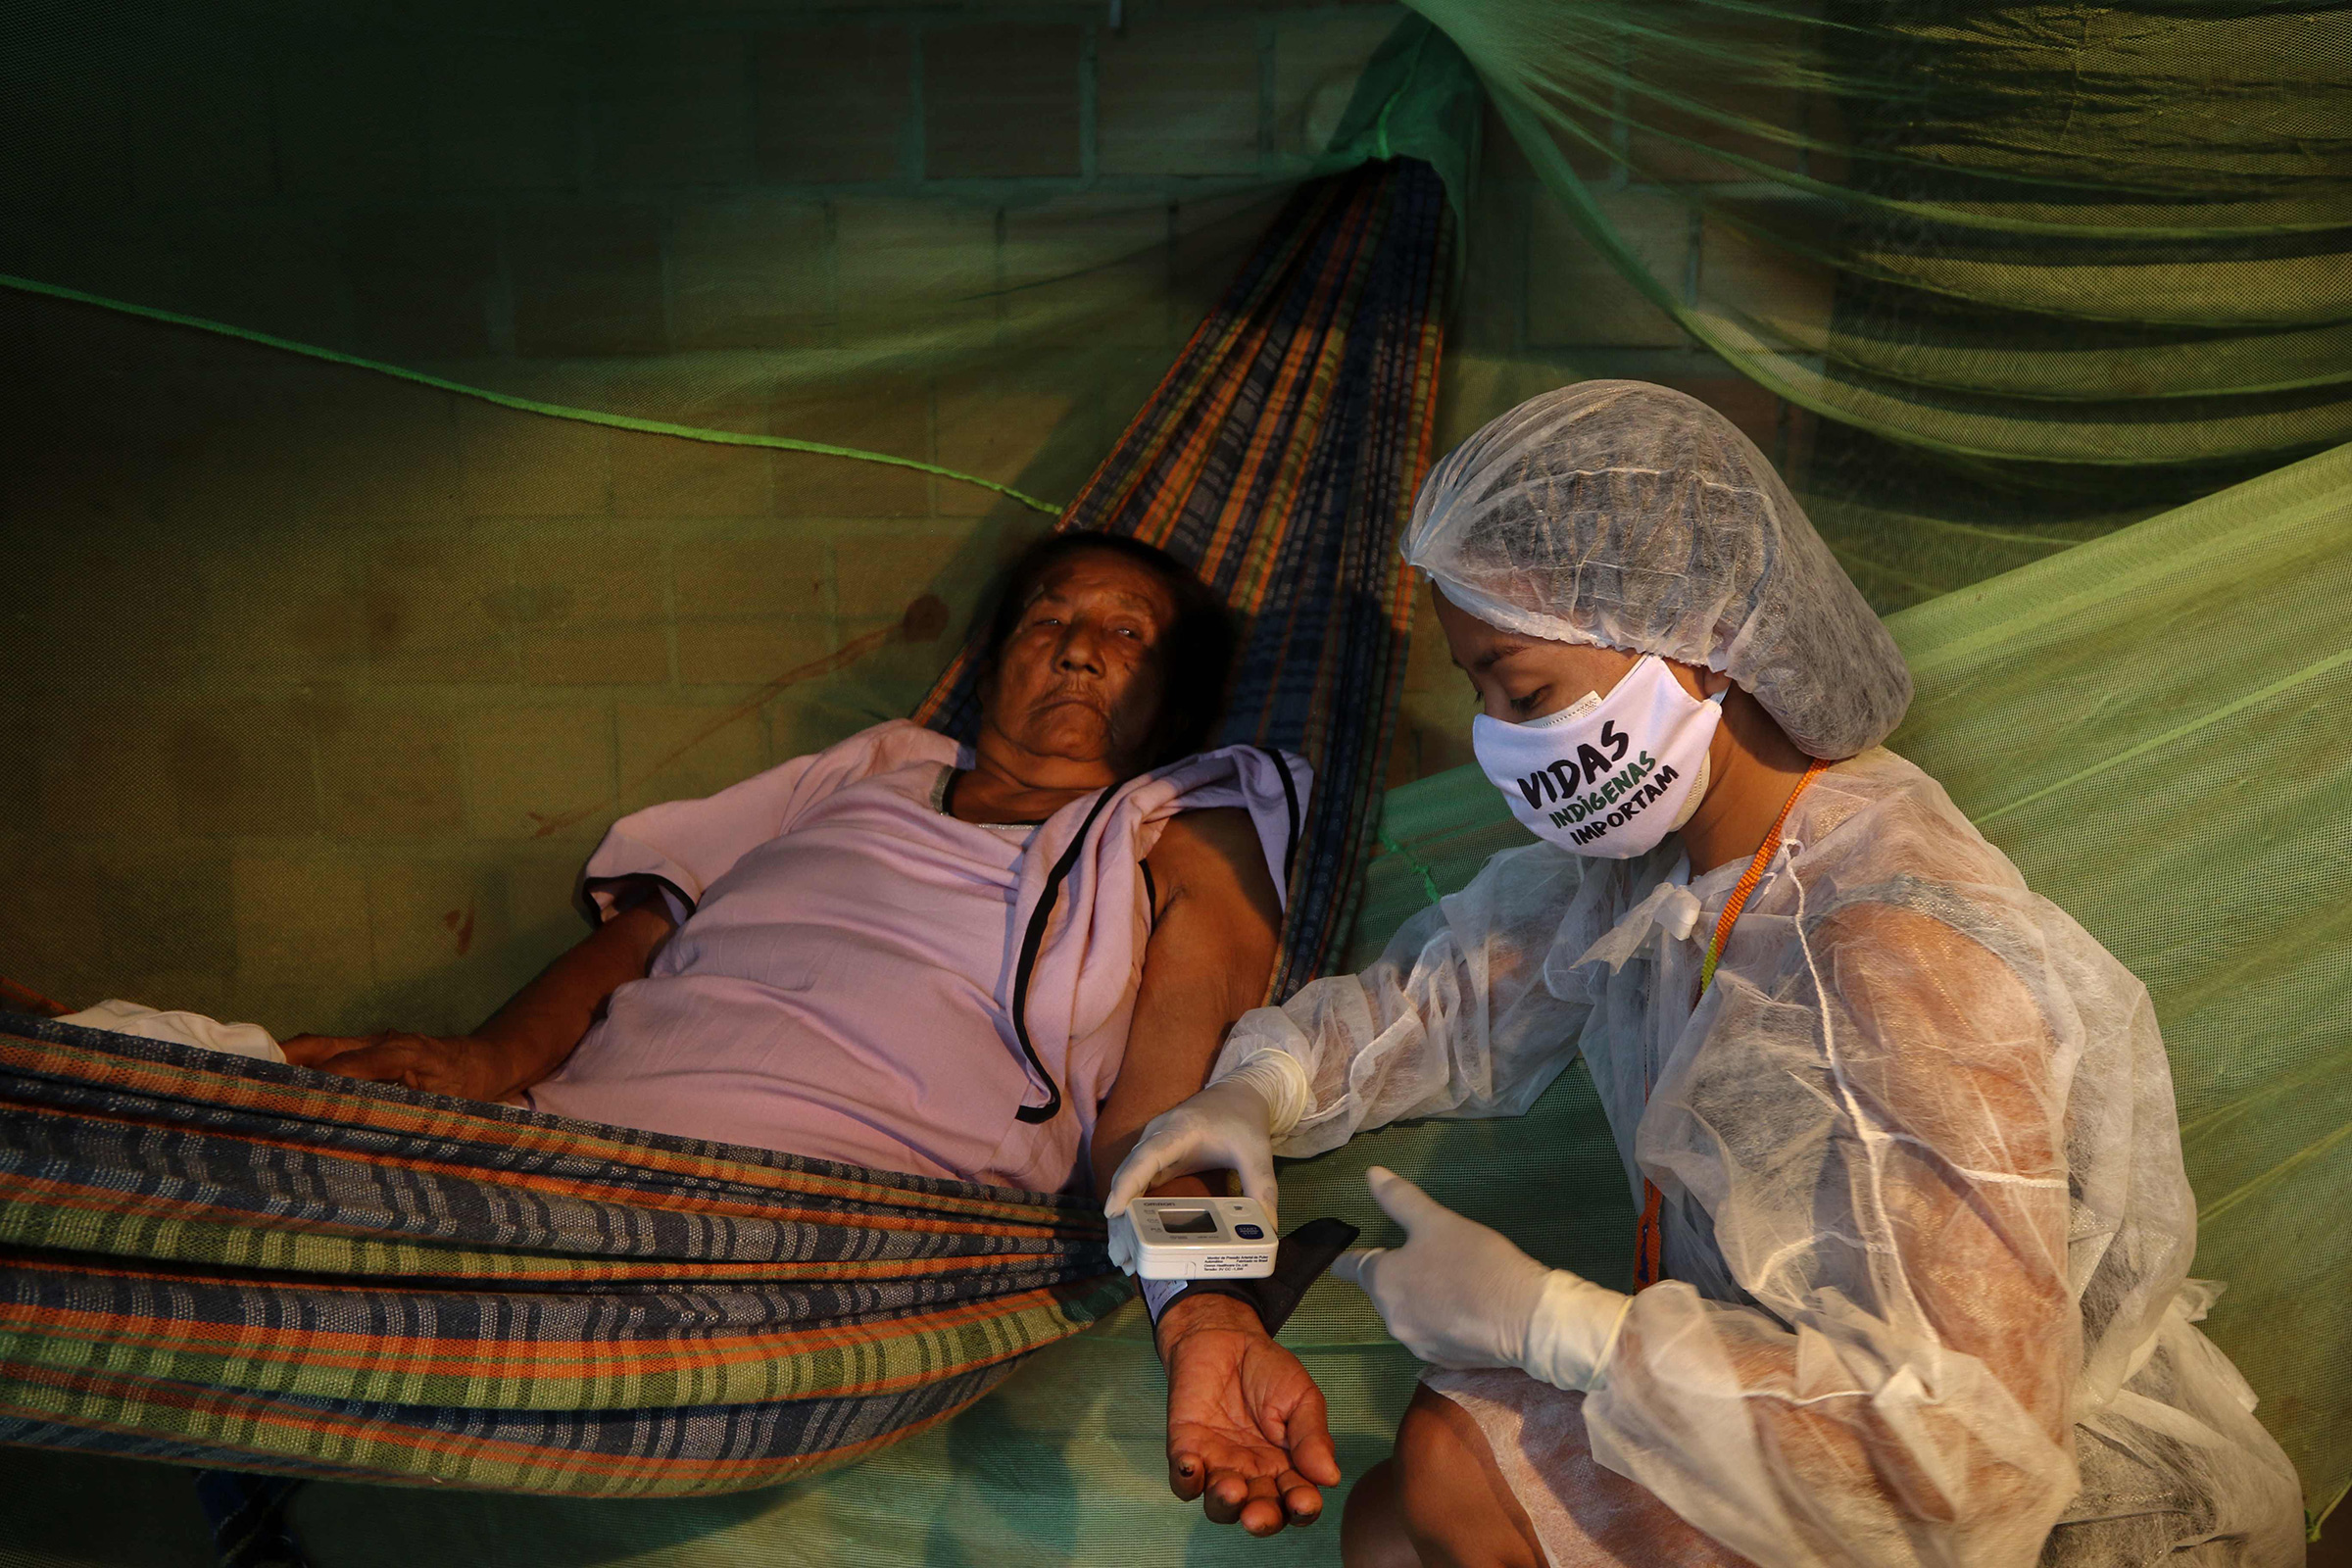 Nurse technician Vanda Ortega Witoto, 32, takes care of a patient in Parque das Tribos, an indigenous community near Manaus, the capital of Brazil's northern Amazonas state